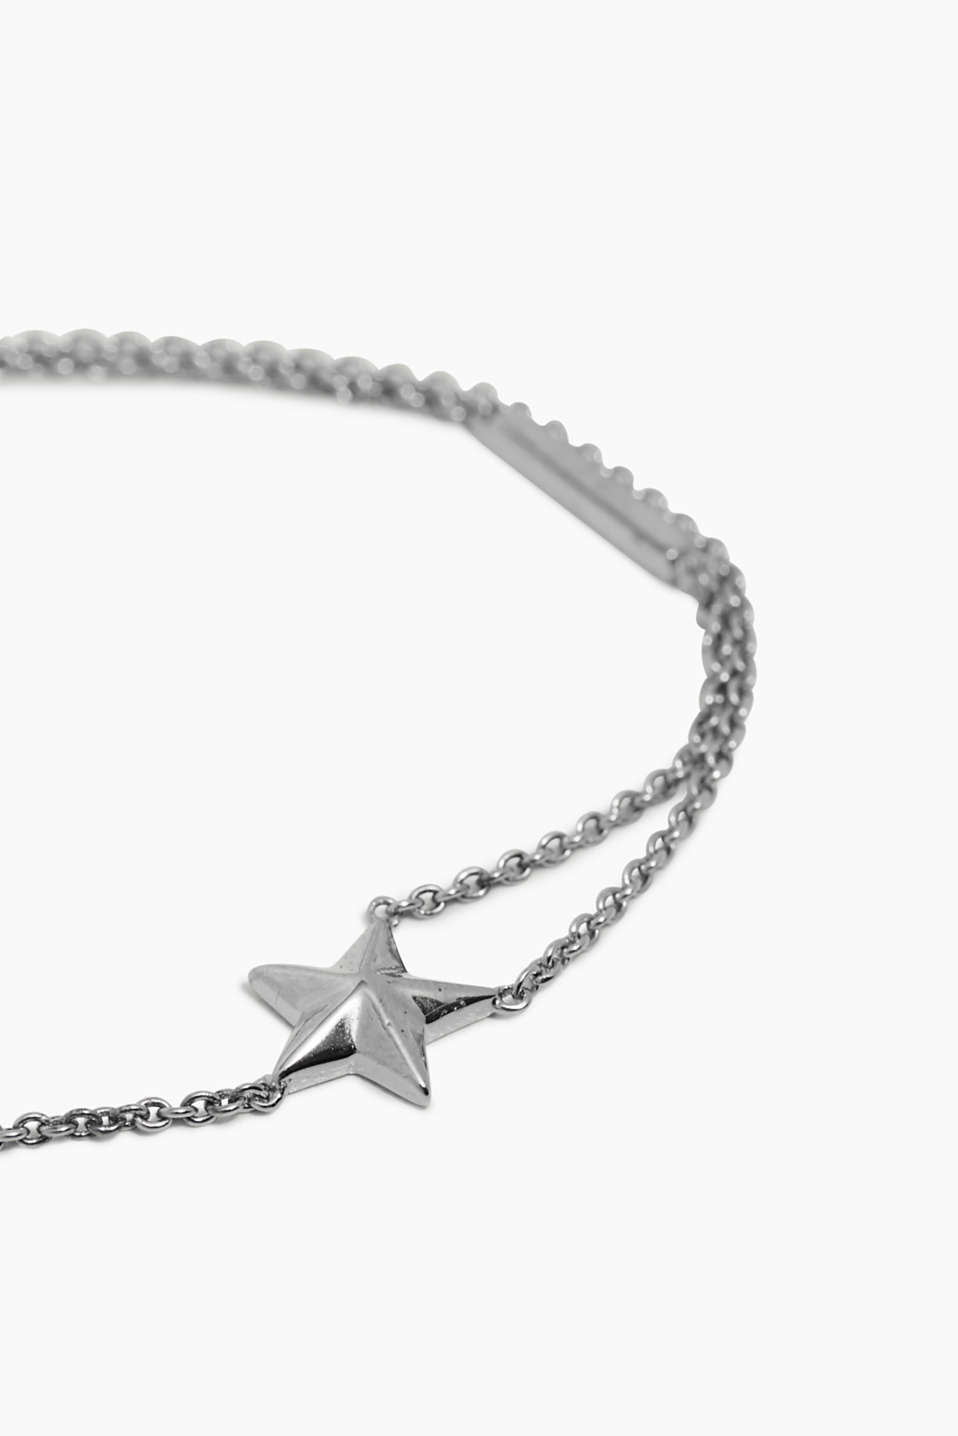 Trend: Stars – This fine link bracelet features a small star charm.